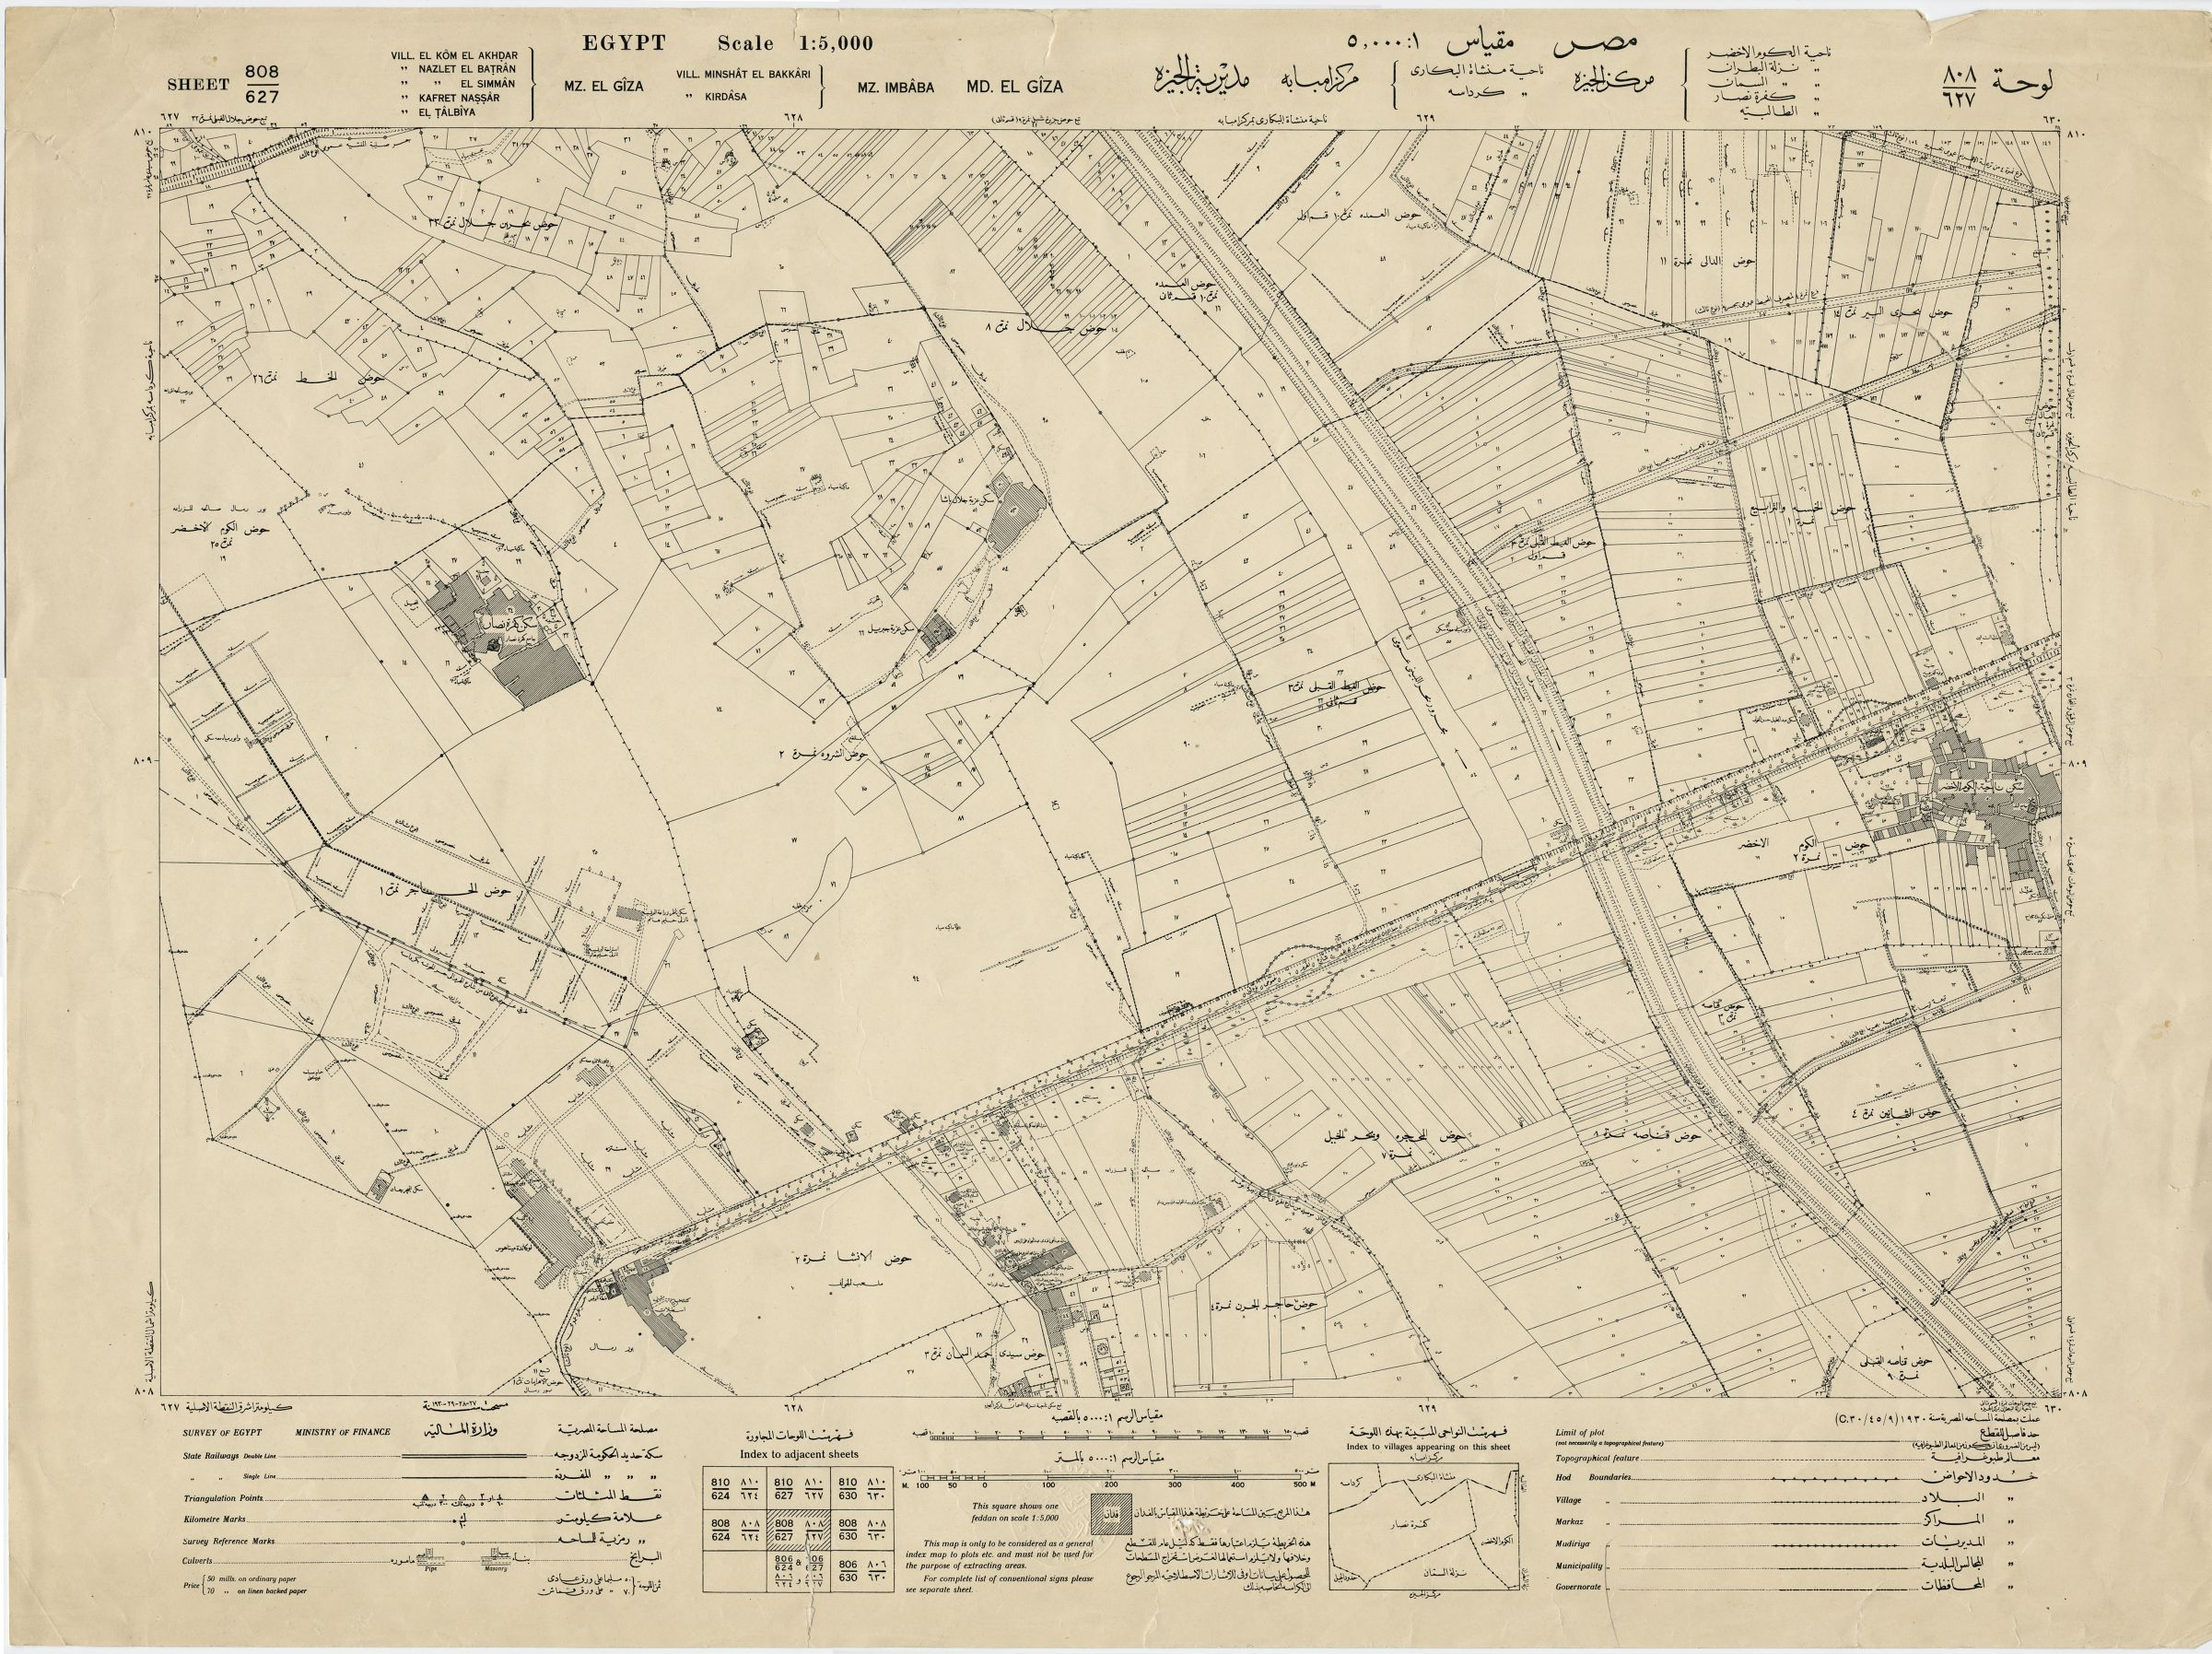 Maps and plans: Plan of Giza